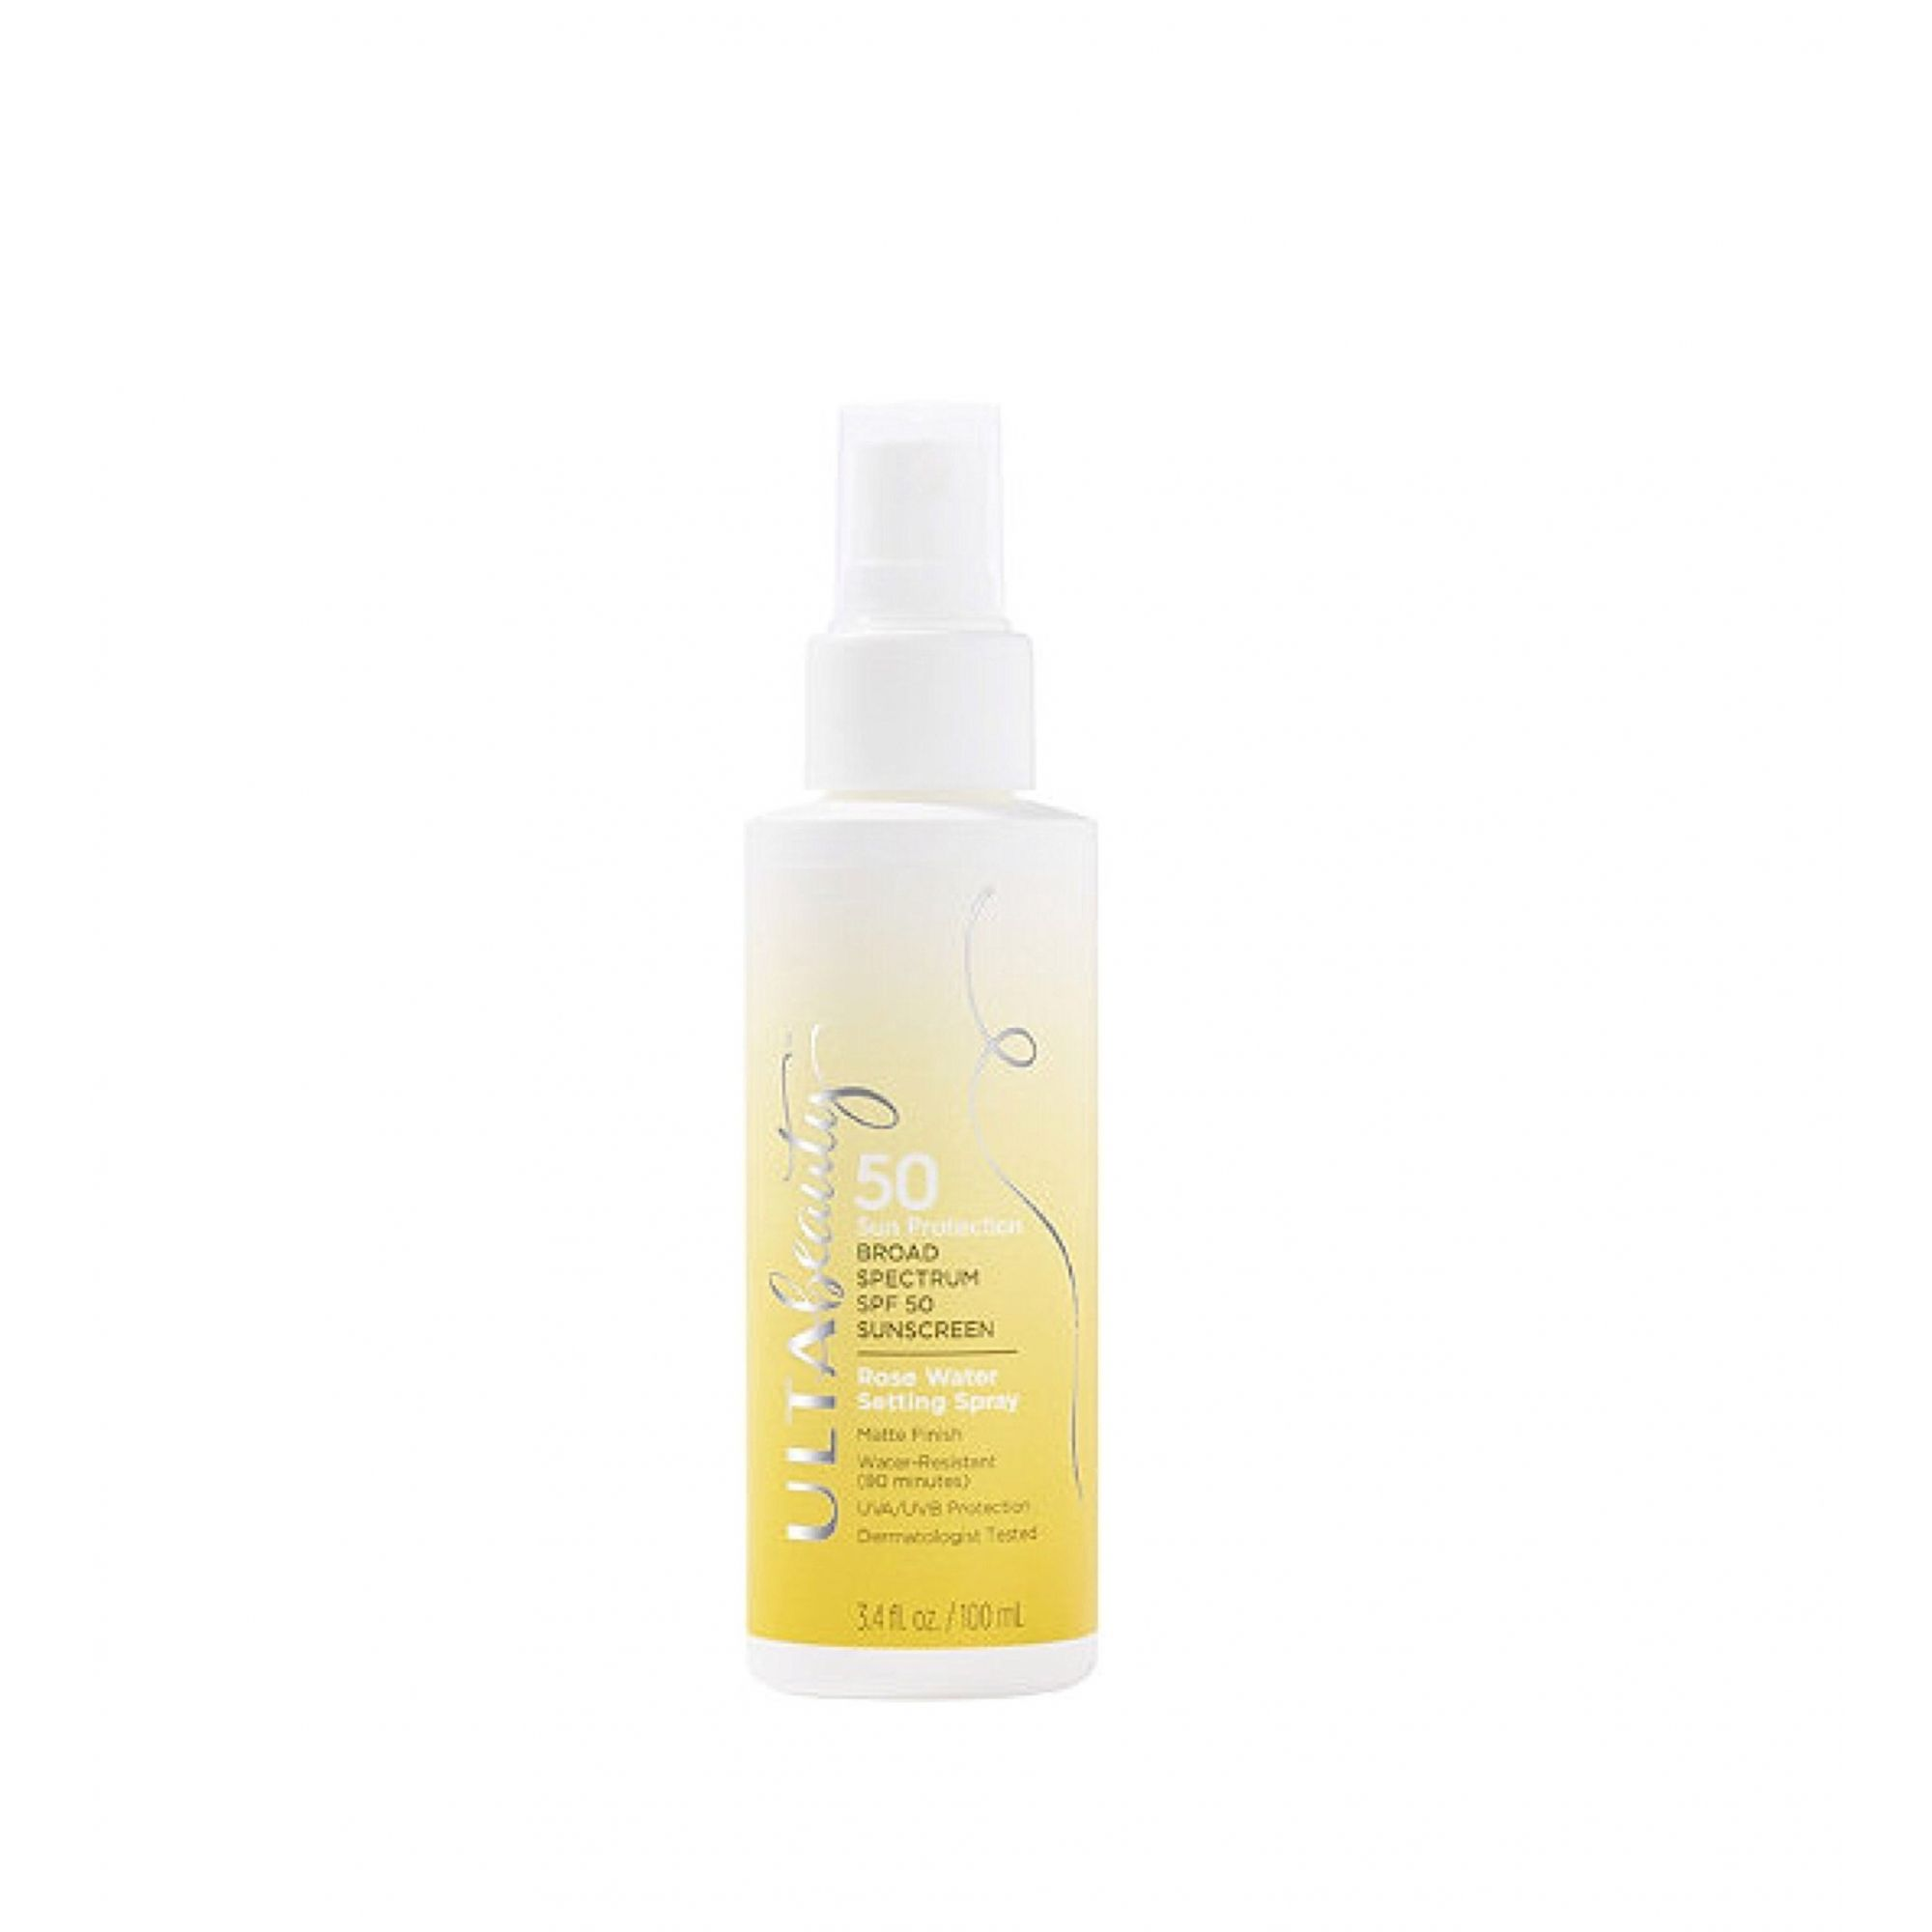 SPF 50 Sunscreen Rose Water Setting Spray ULTA